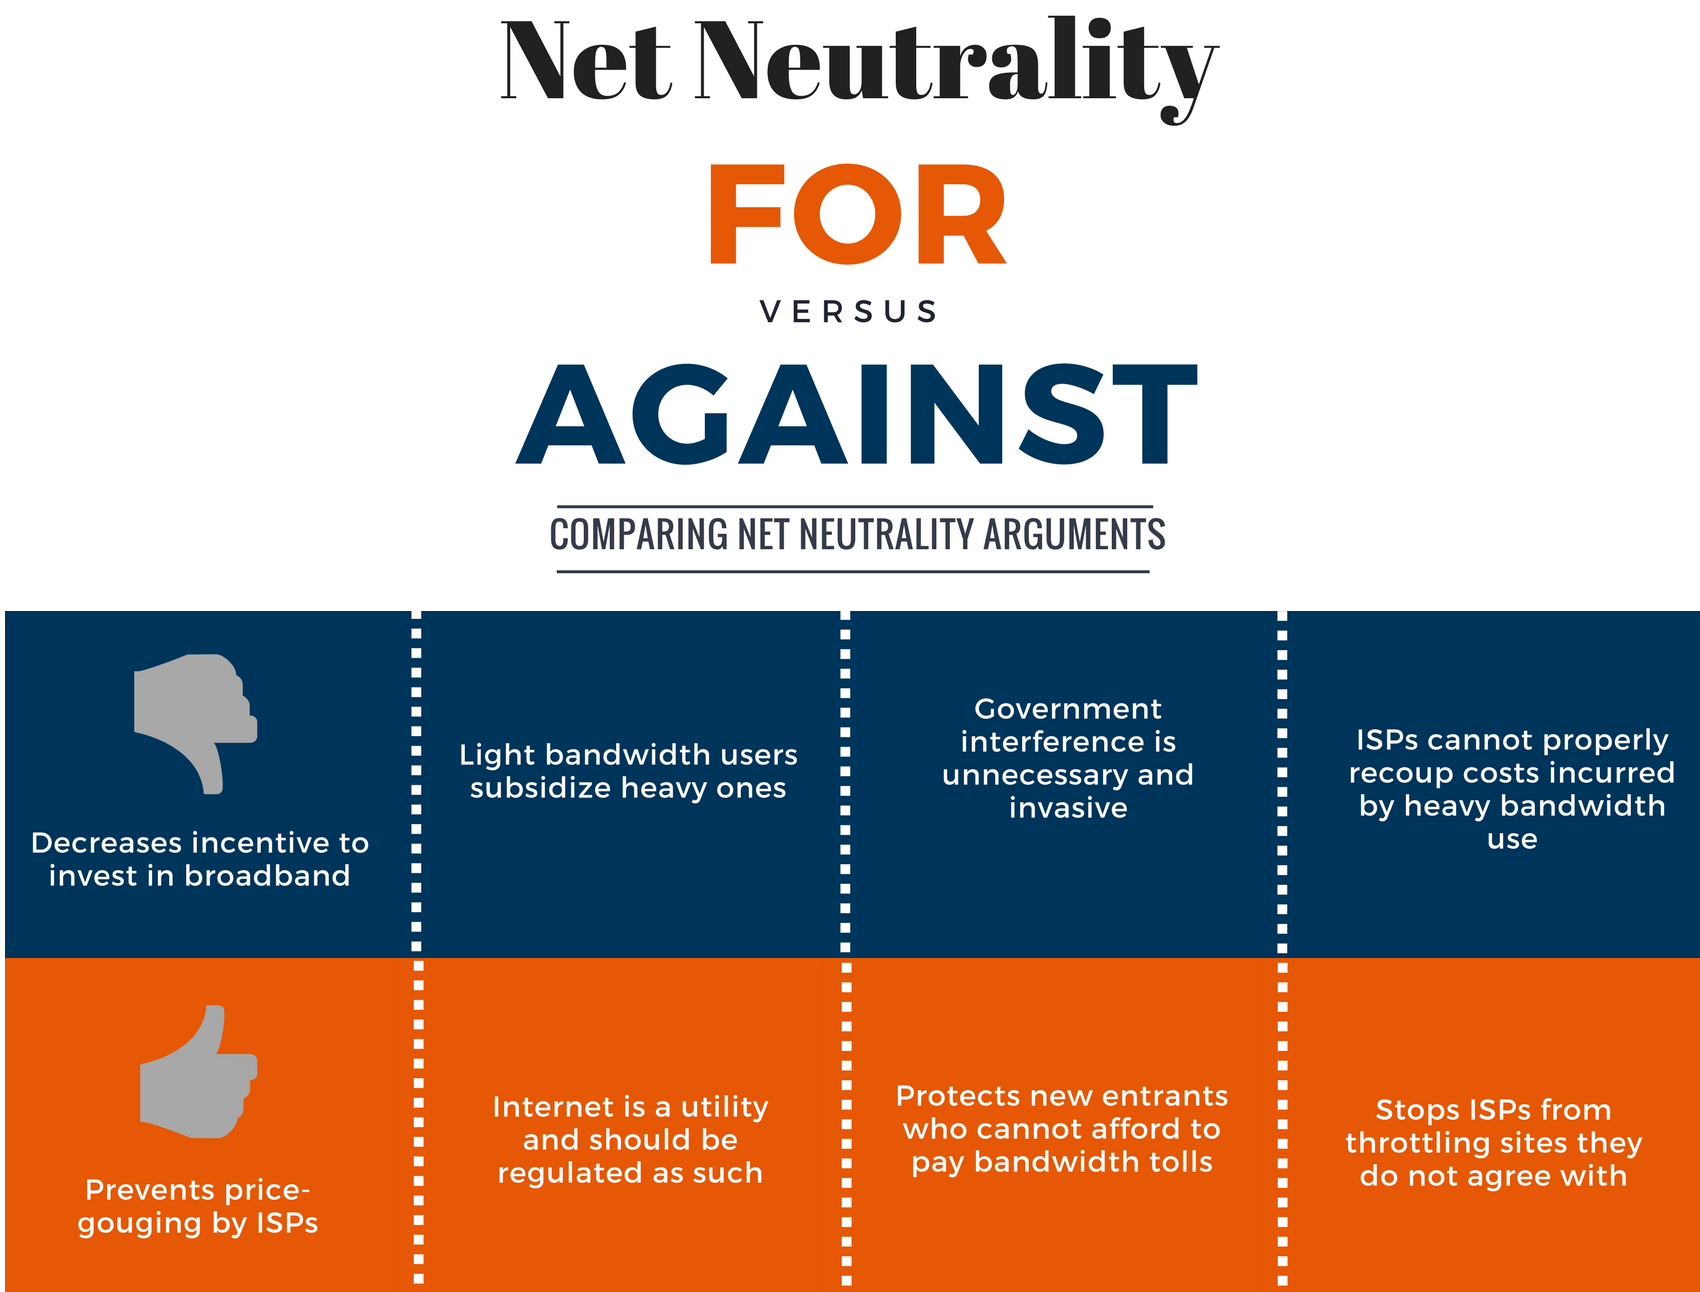 Pros and cons of net neutrality argument.